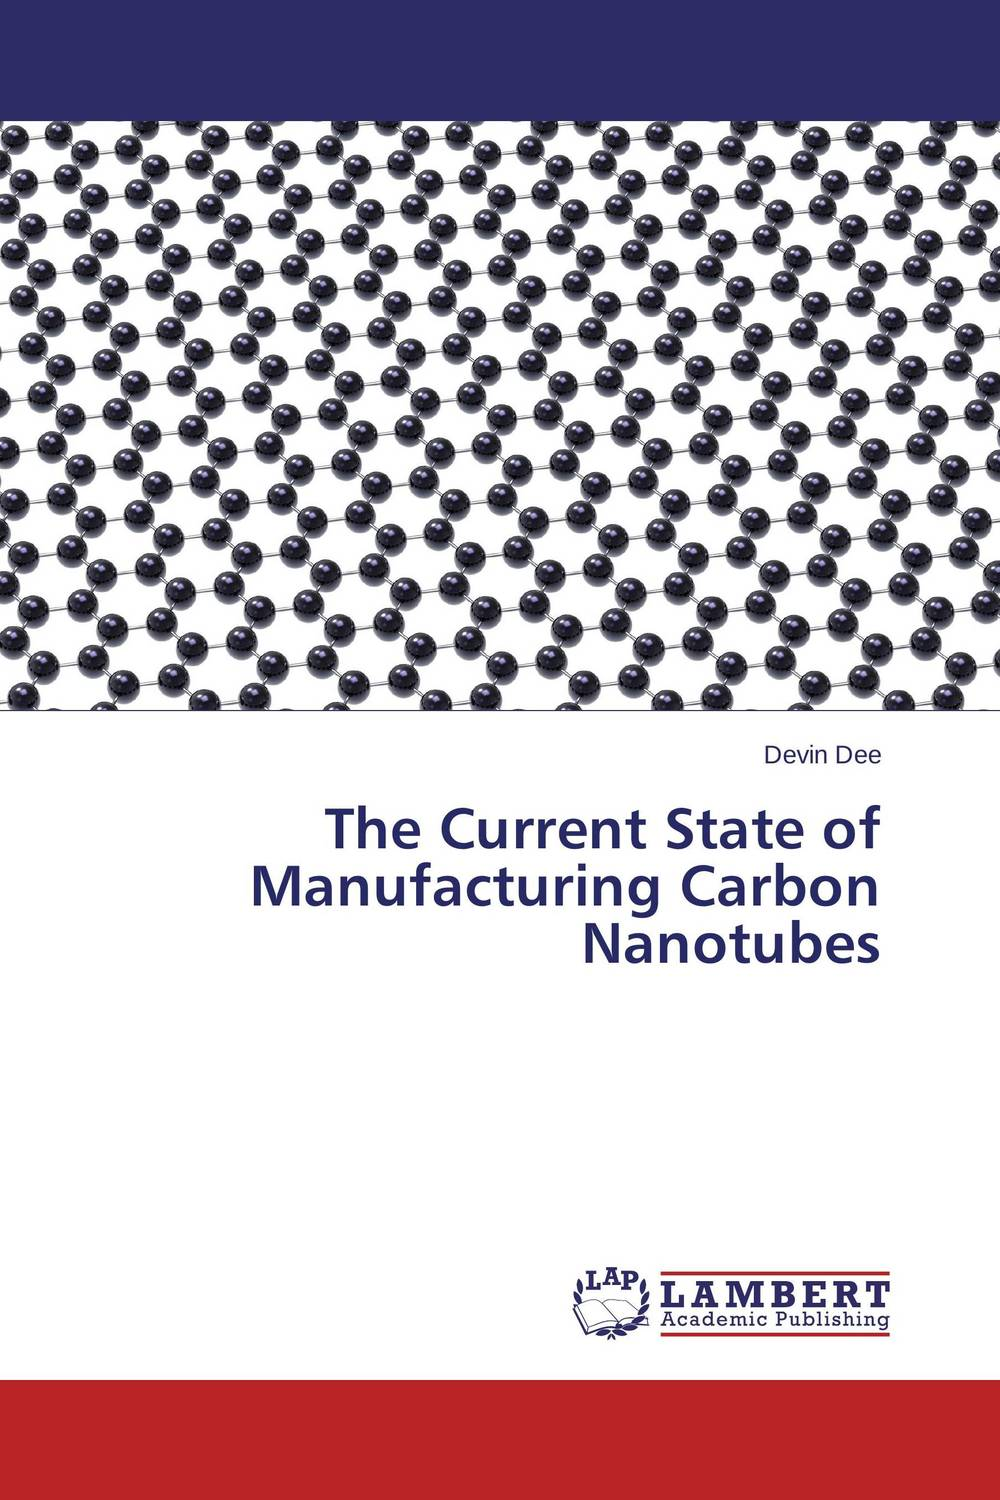 The Current State of Manufacturing Carbon Nanotubes quantum optics with single wall carbon nanotubes